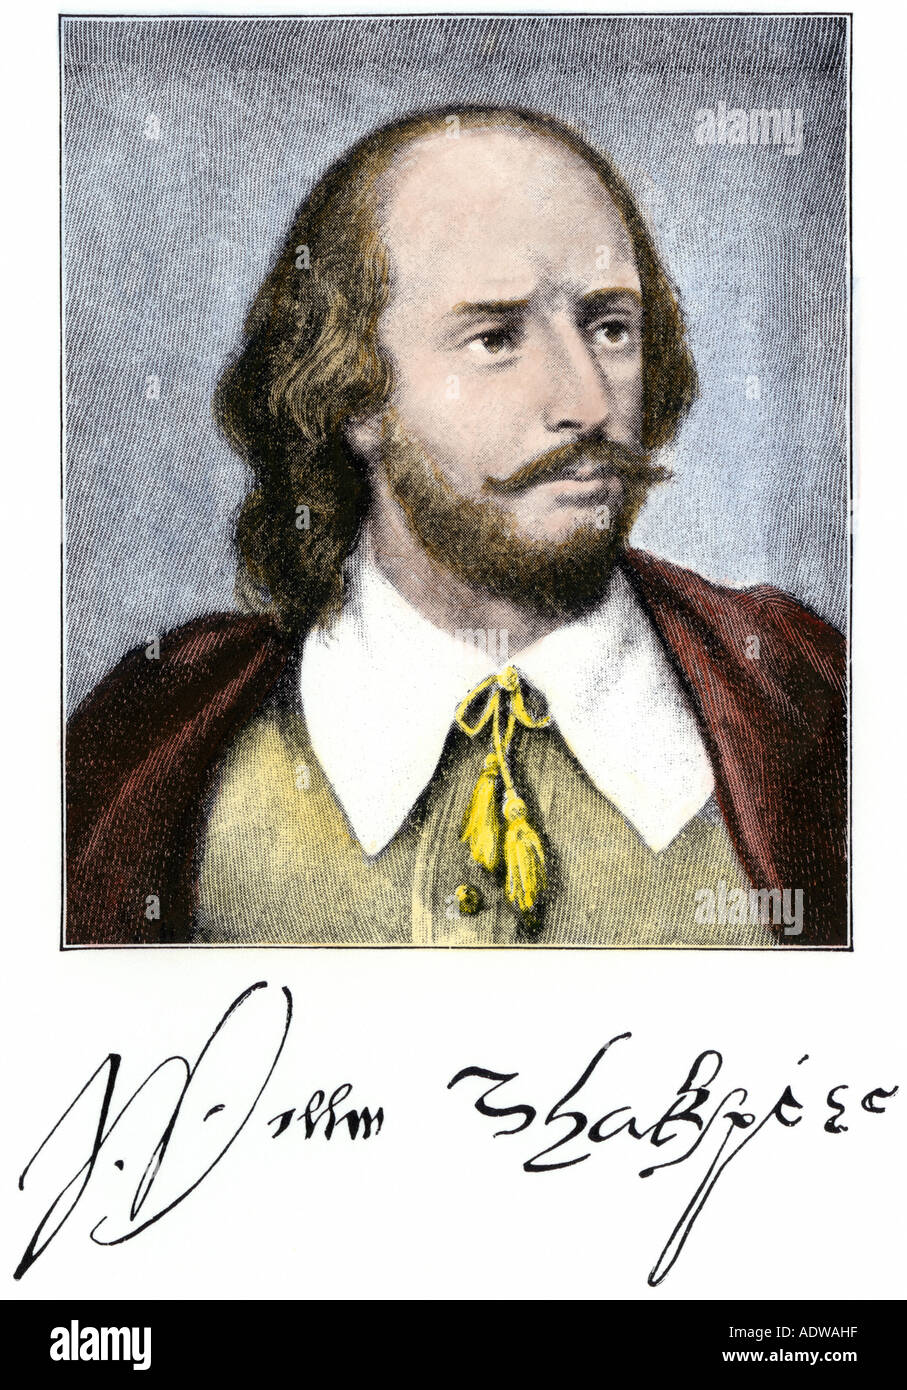 William Shakespeare with autograph. Hand-colored halftone of an illustration - Stock Image